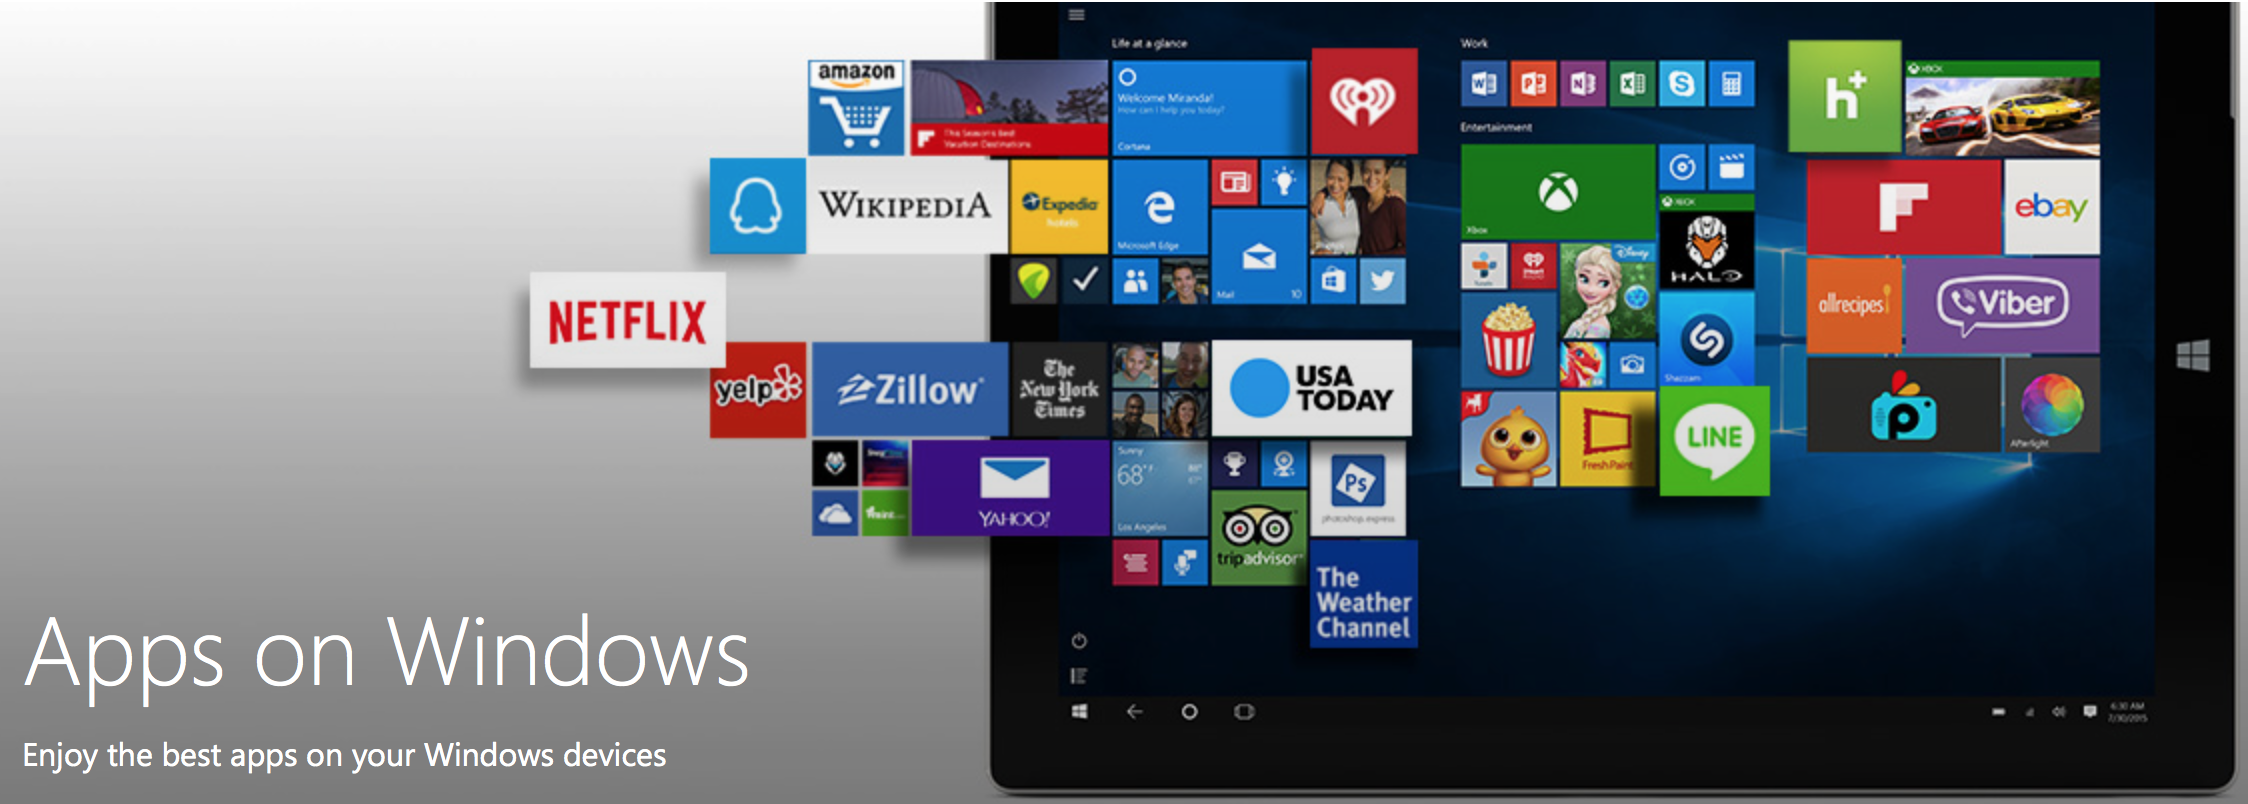 microsoft offers universal app store for pc and mobile